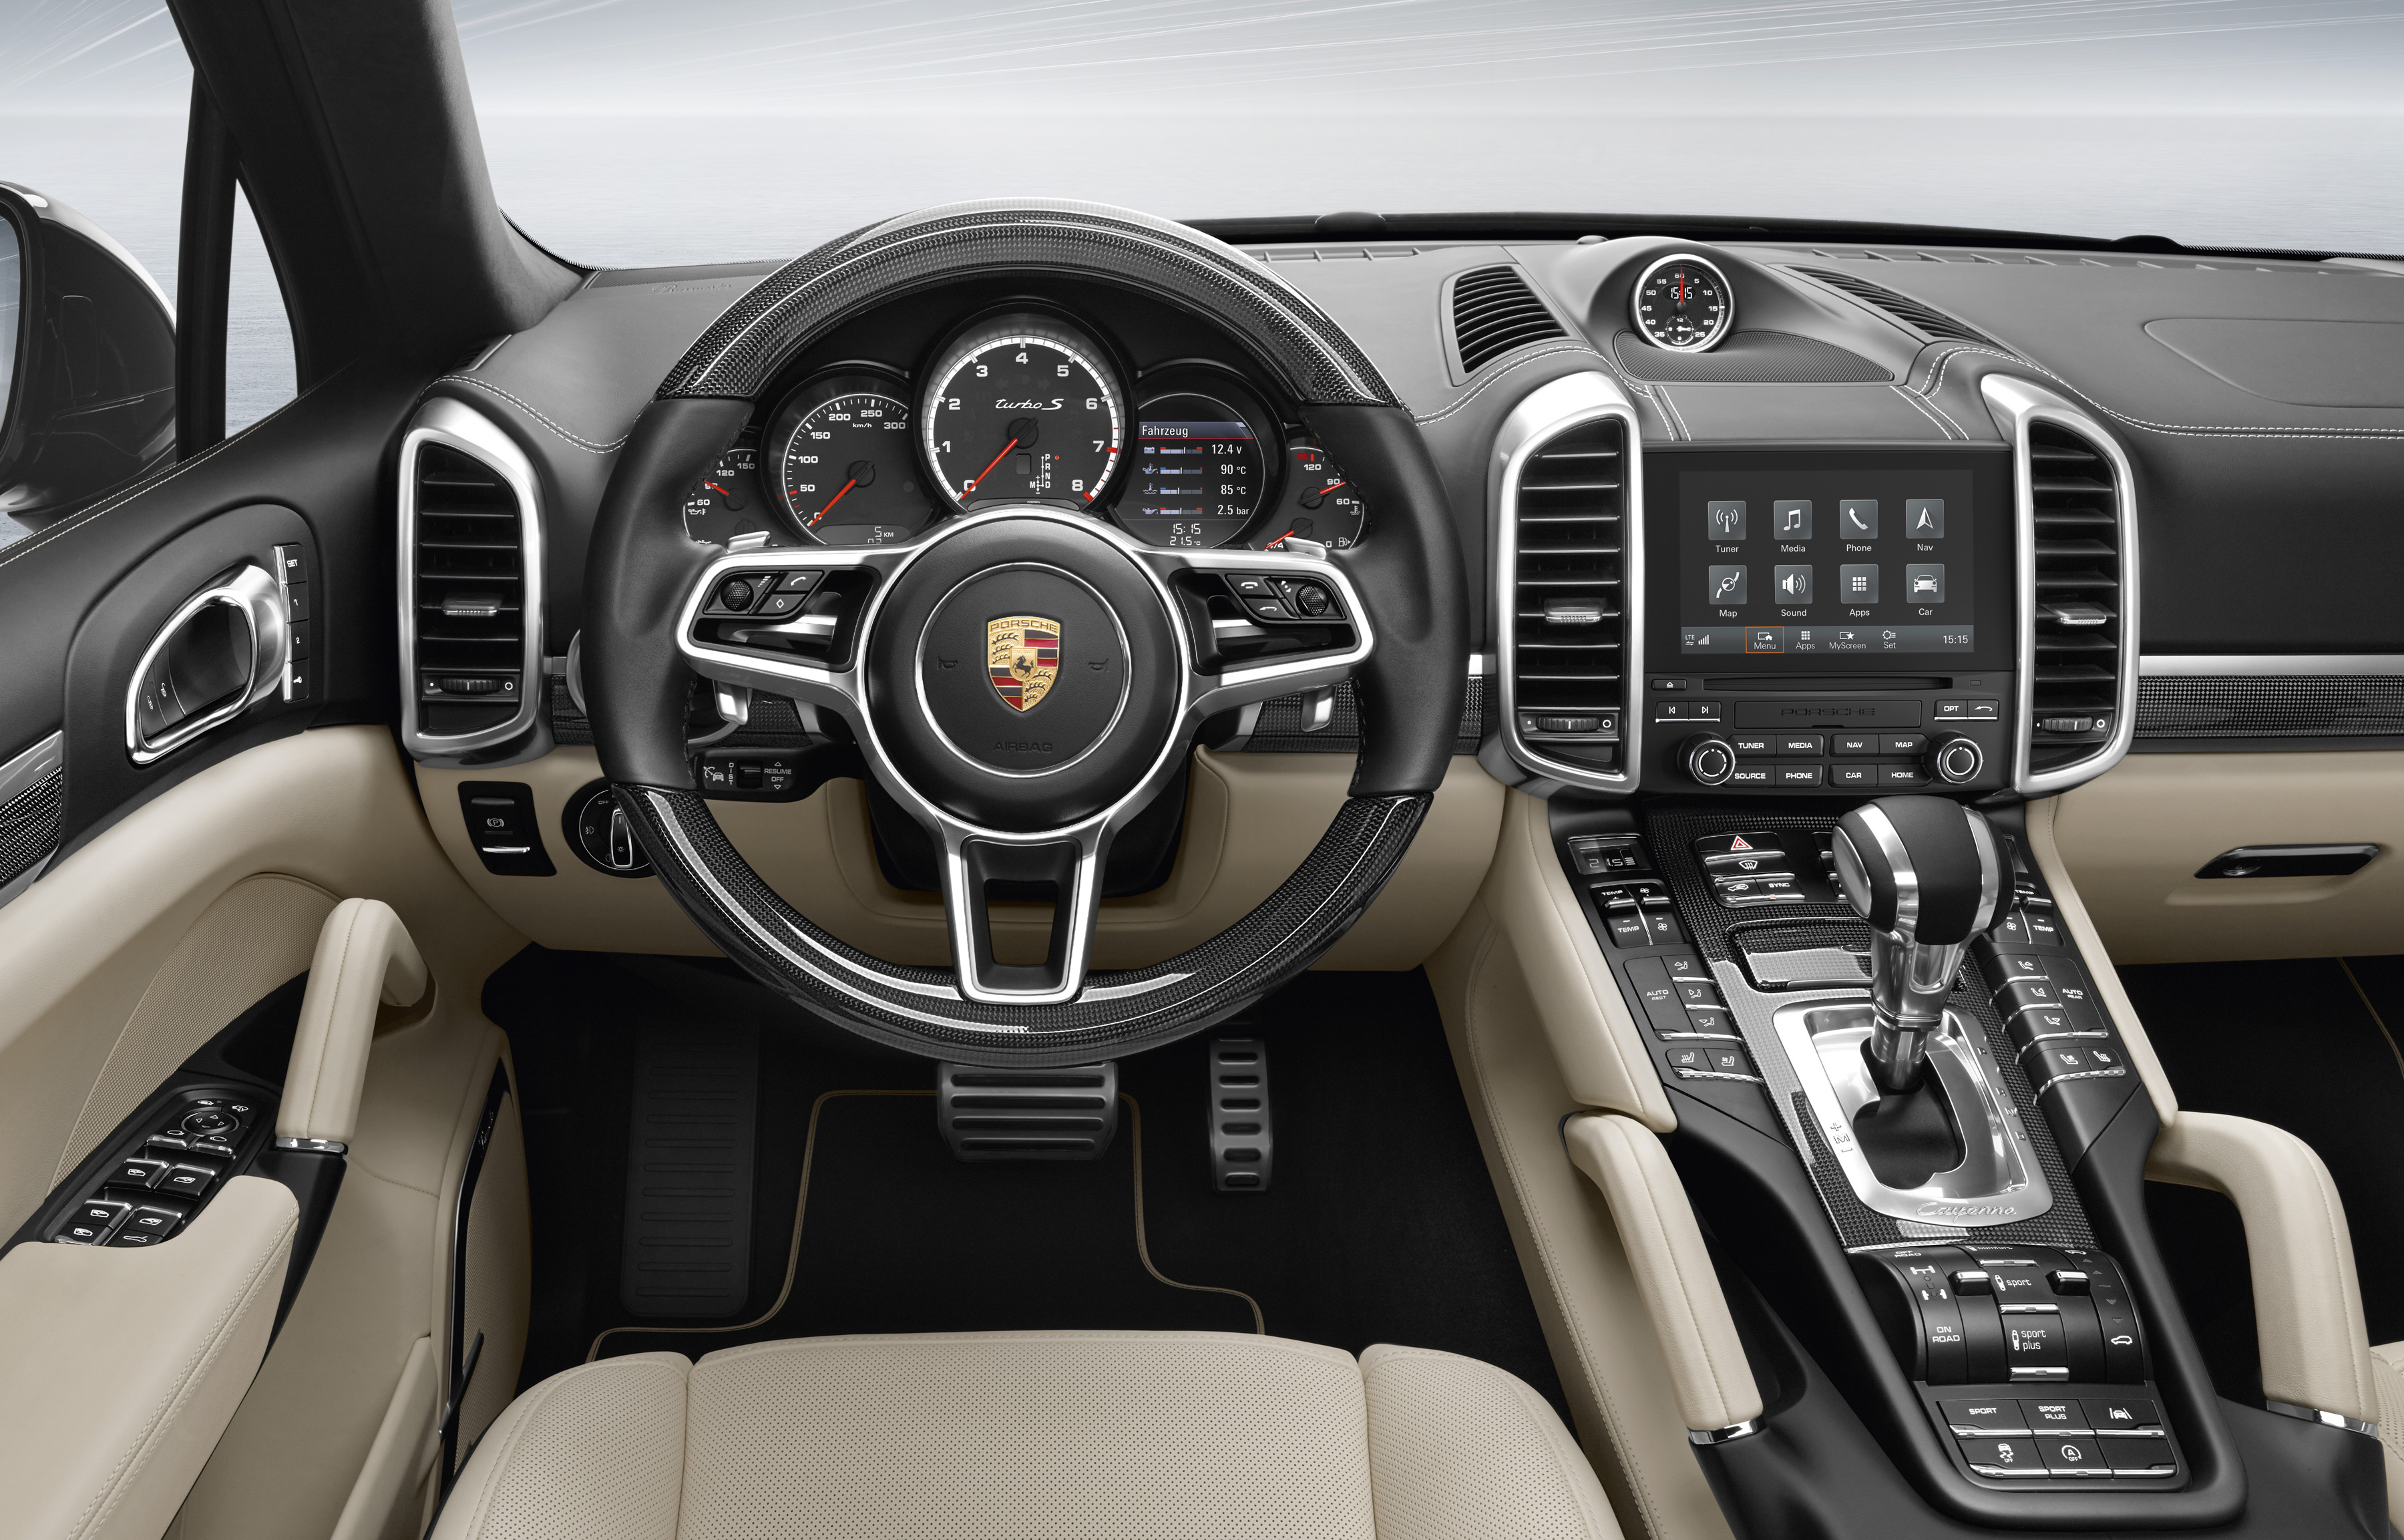 New model year cutting edge infotainment in the cayenne and new new model year cutting edge infotainment in the cayenne and new engine for the macan entry level model with turbocharged four cylinder engine porsche sciox Image collections